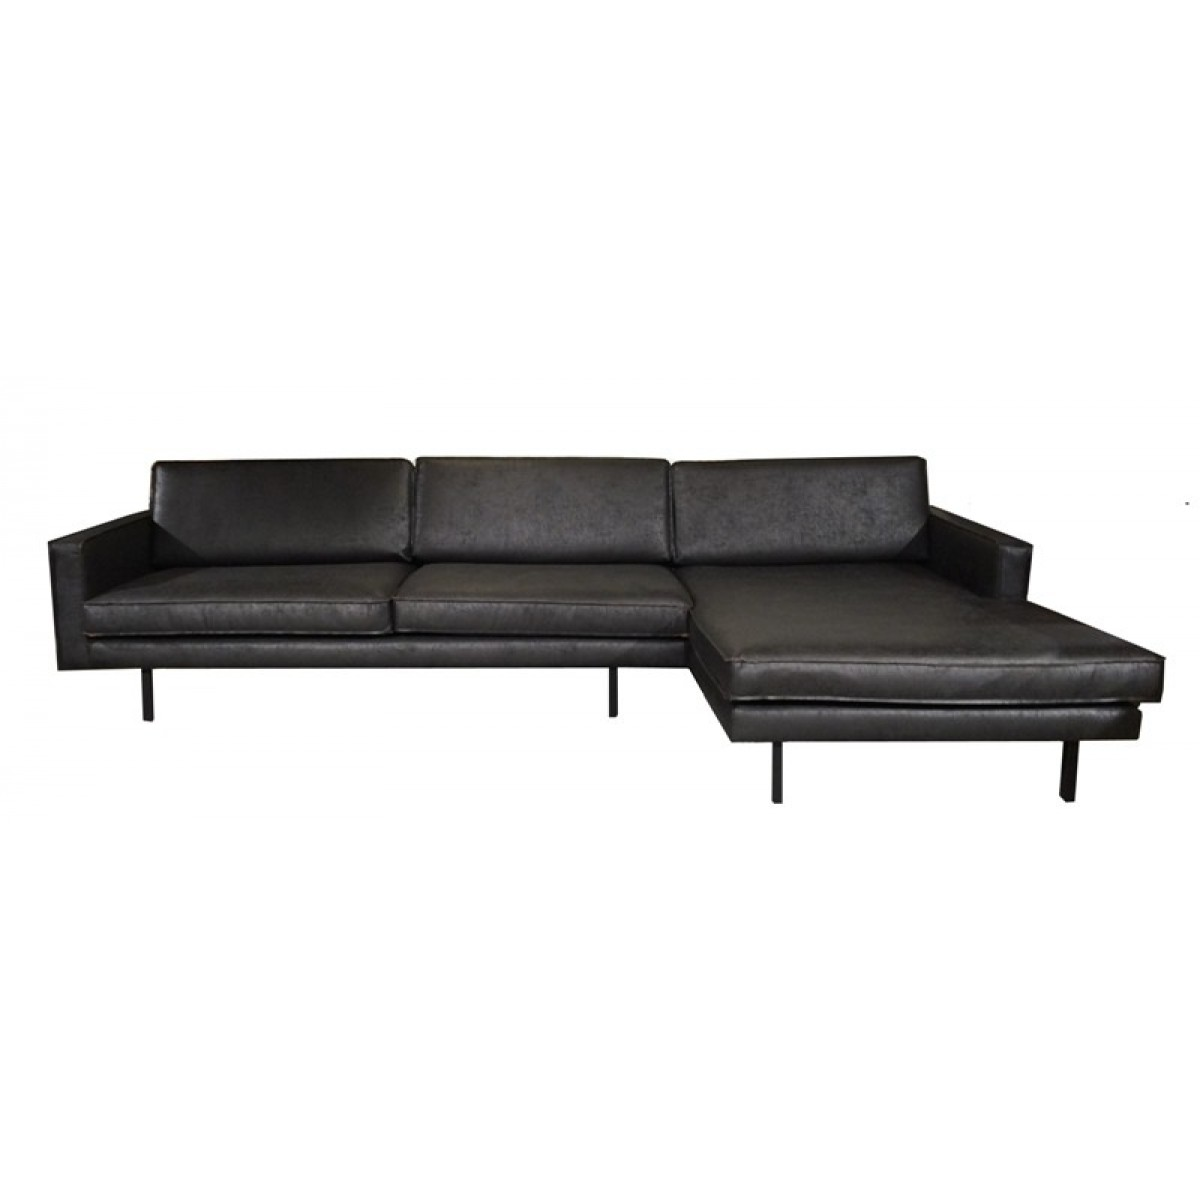 just_3zits_loungebank_longechair_divan_retro_redeo_leer_eco_liberty_microvezel_miltonhouse_zwart